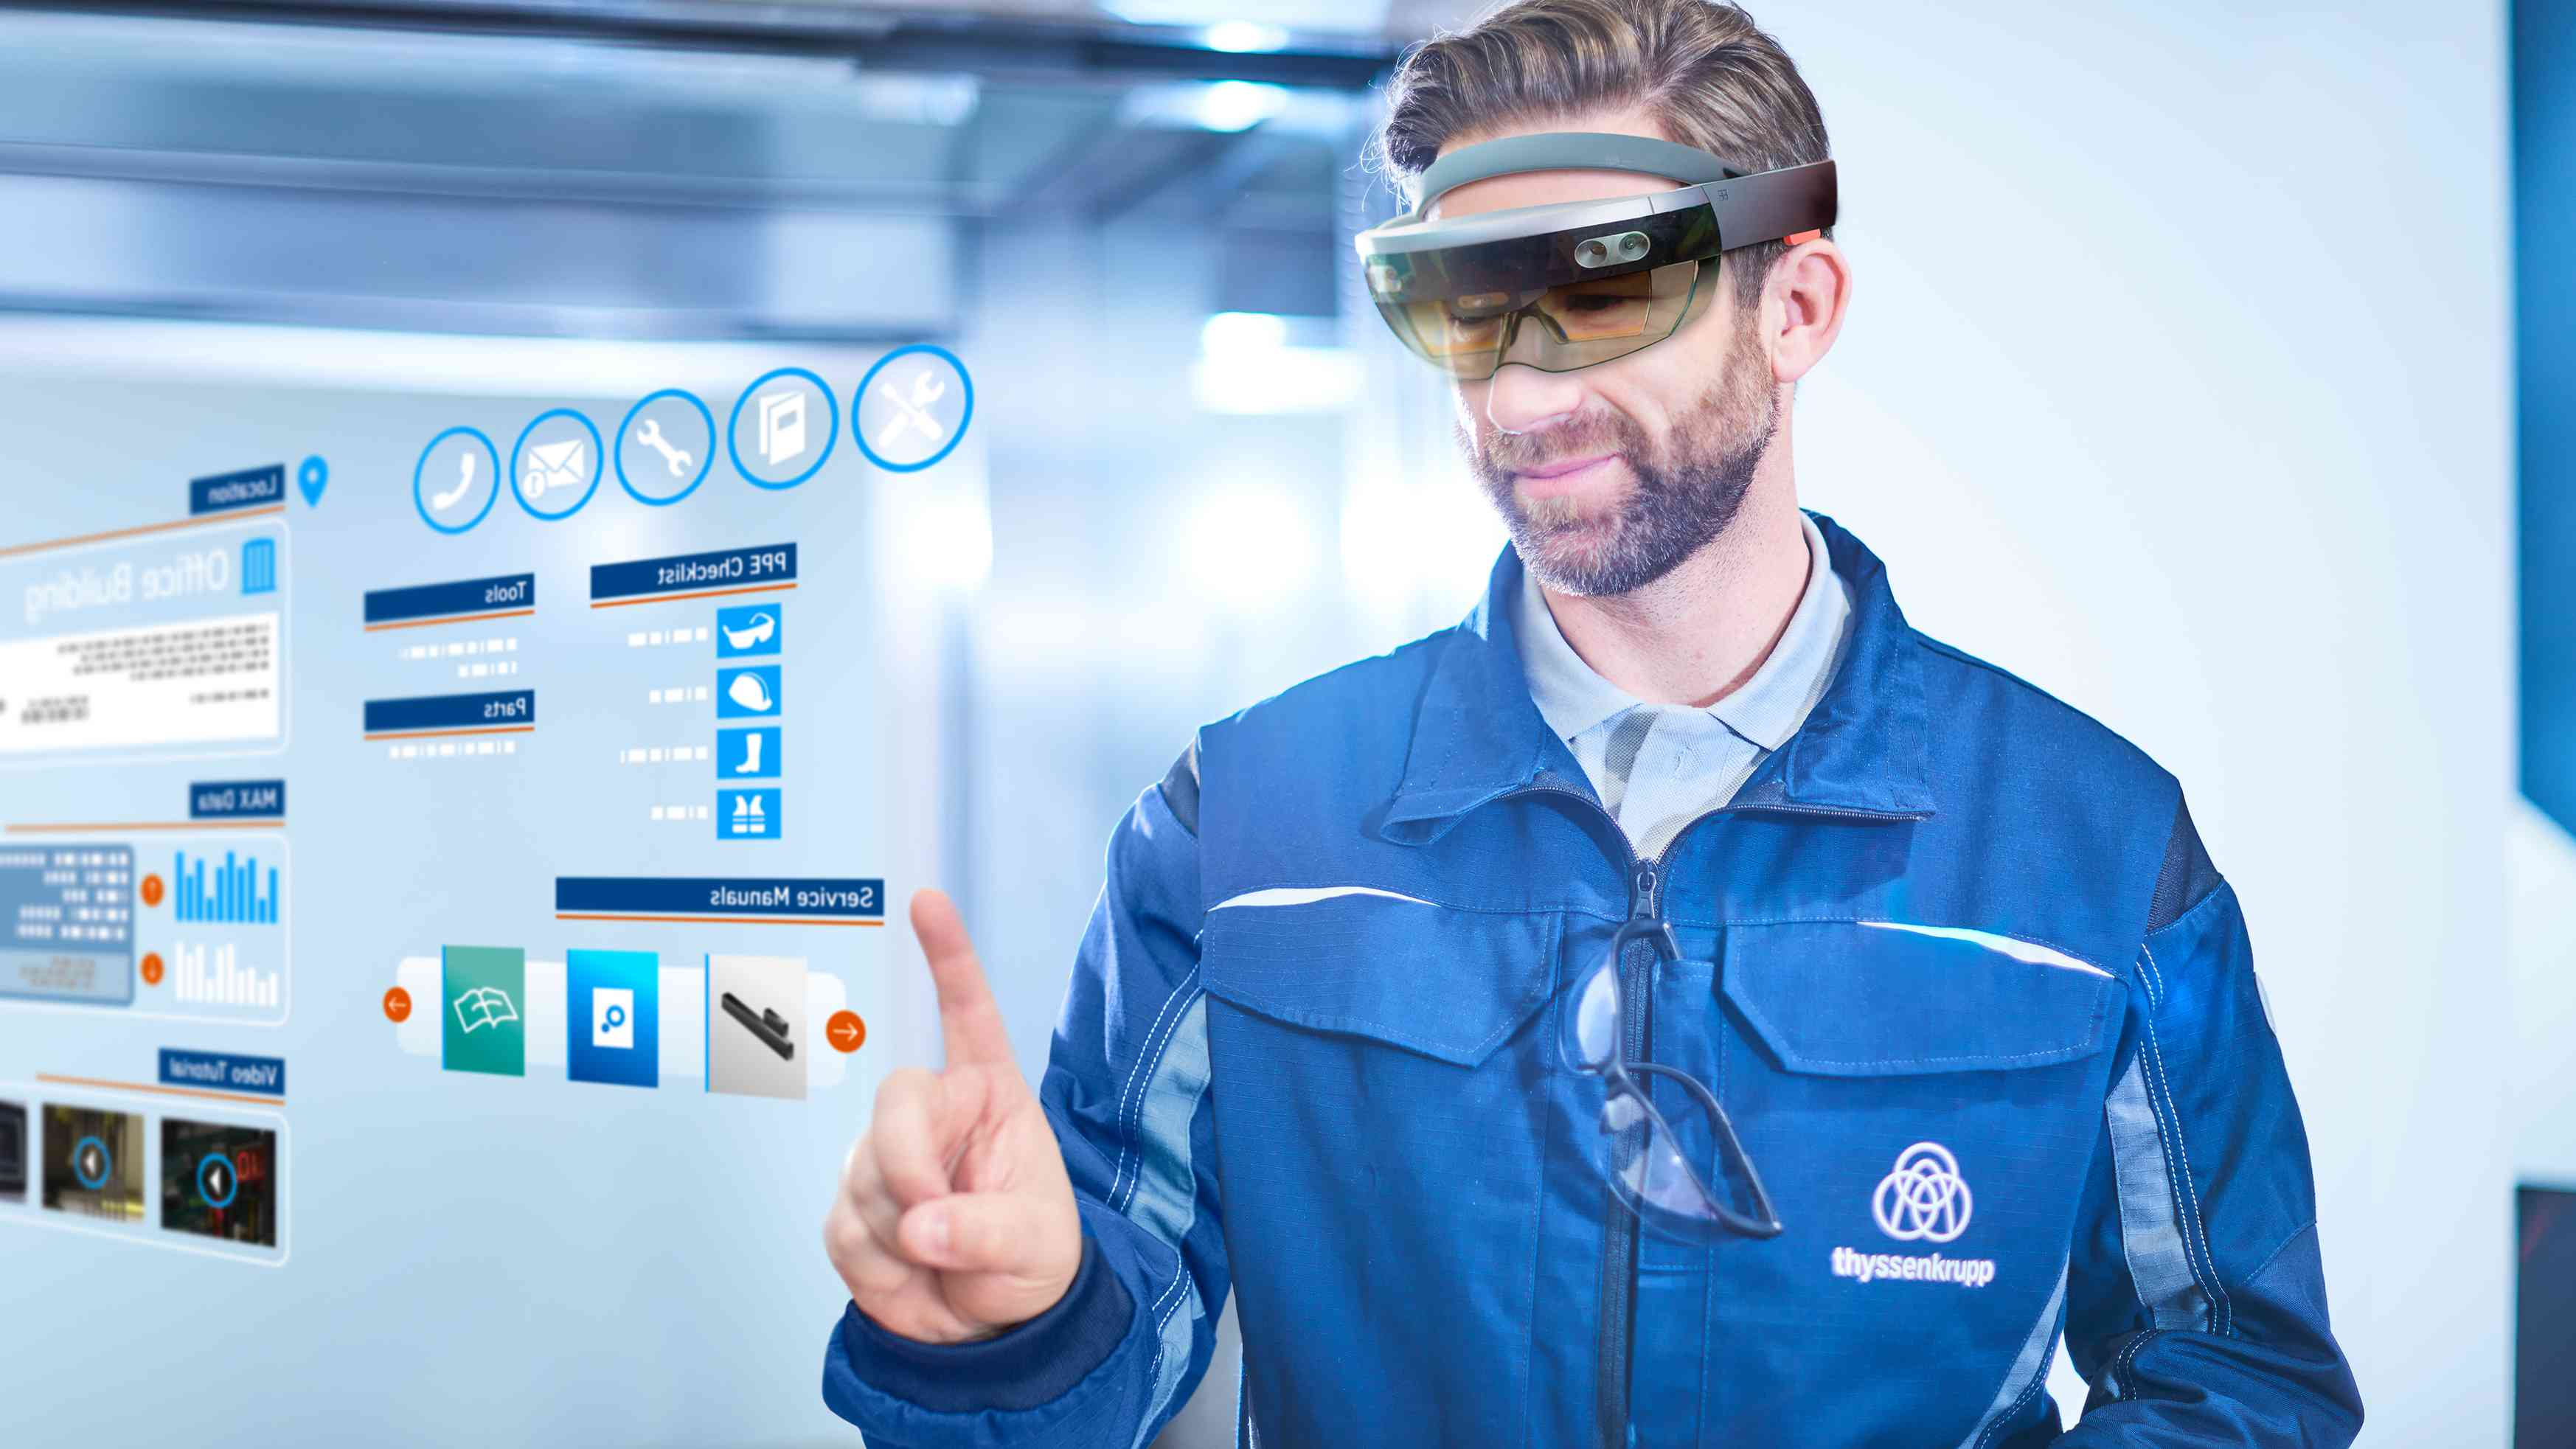 service with hololens